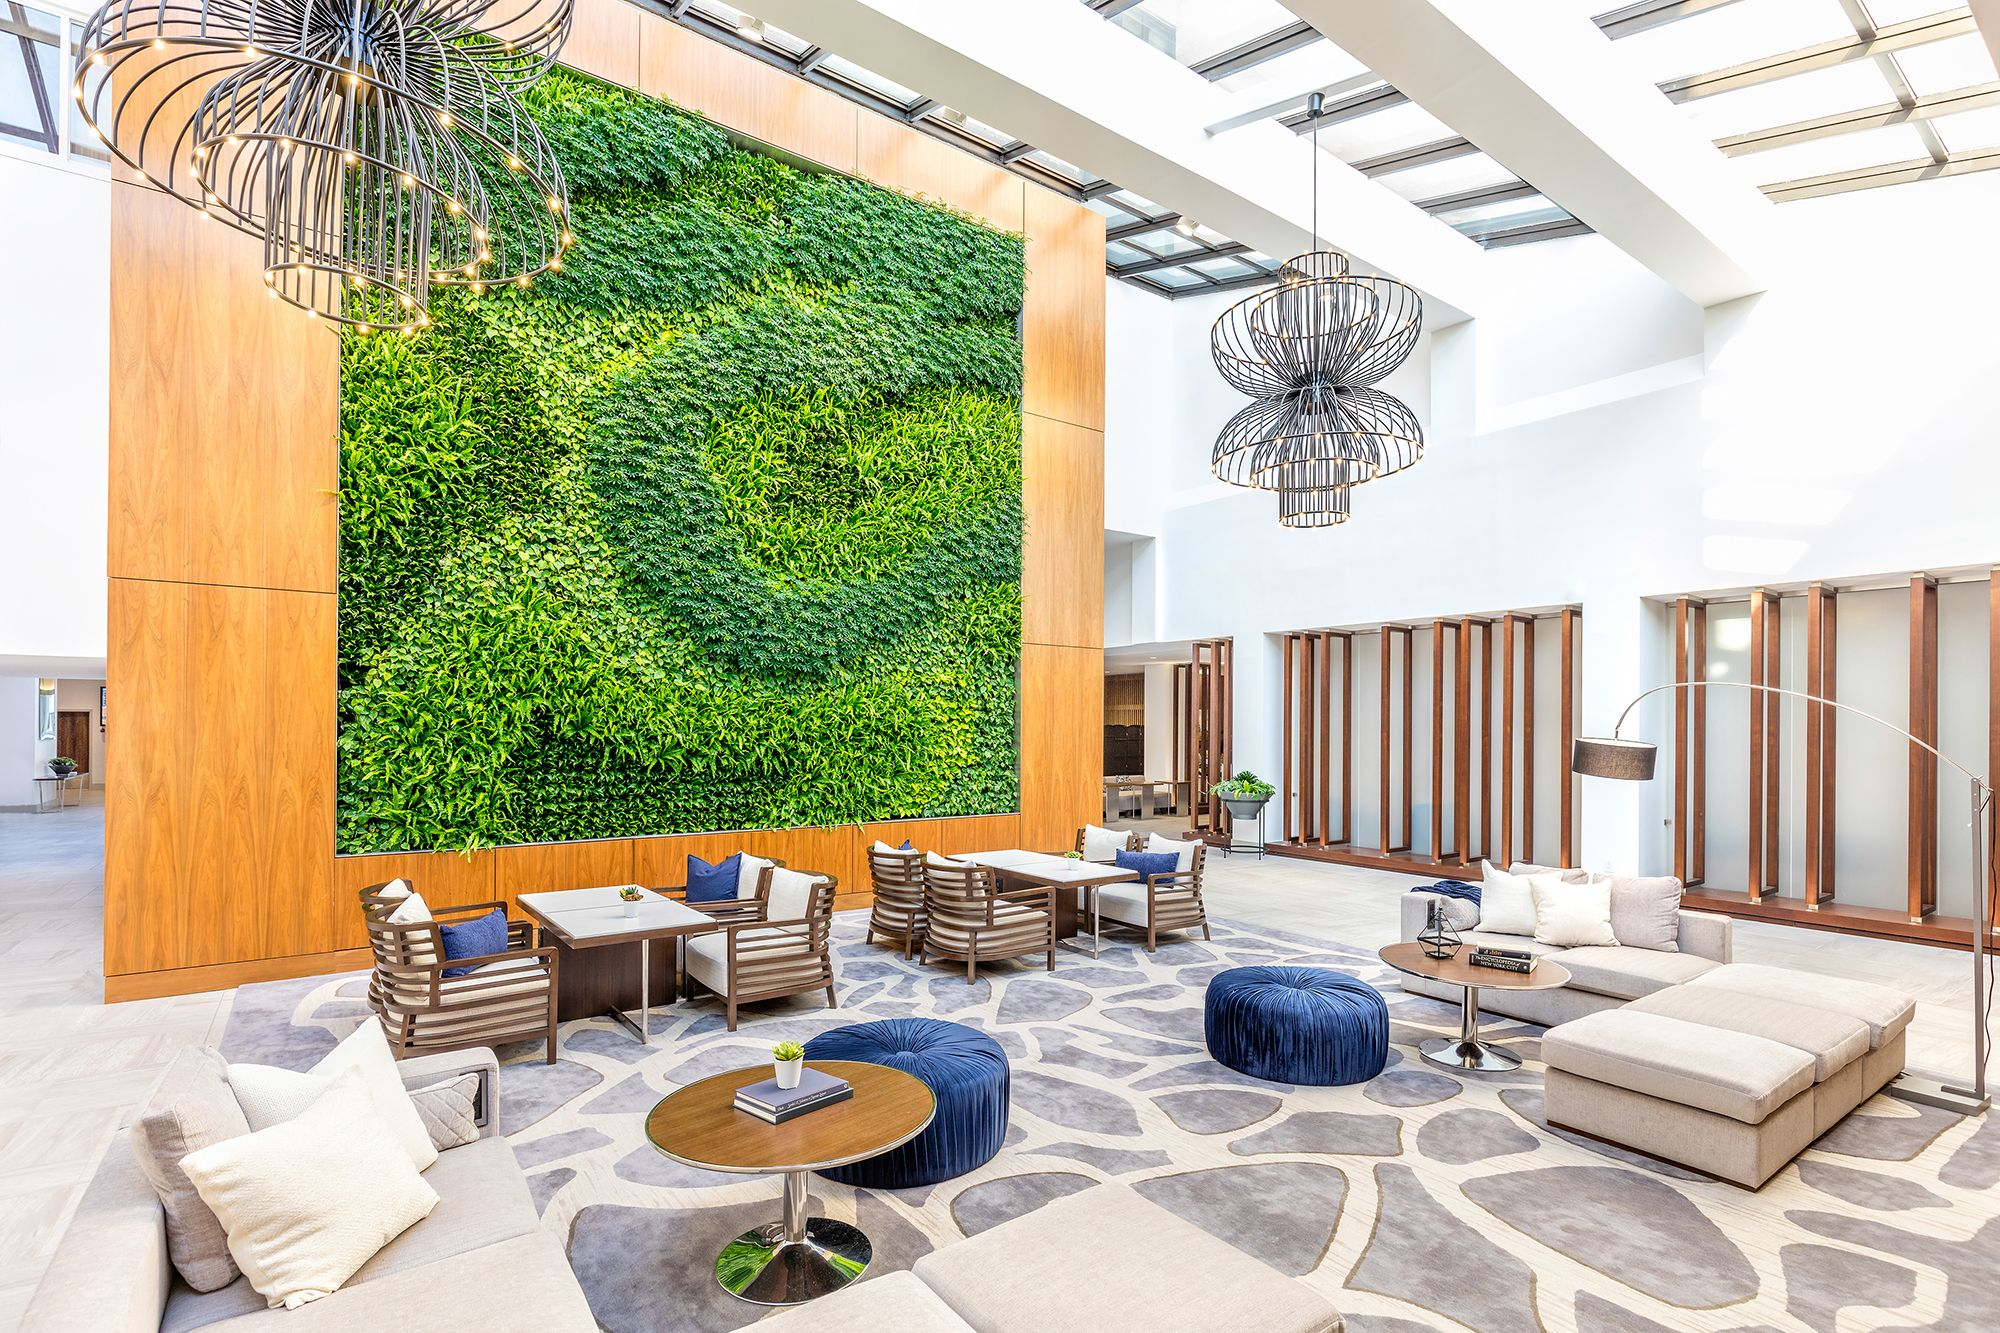 Projects By The Top 100 Giants 2018 With Images Interior